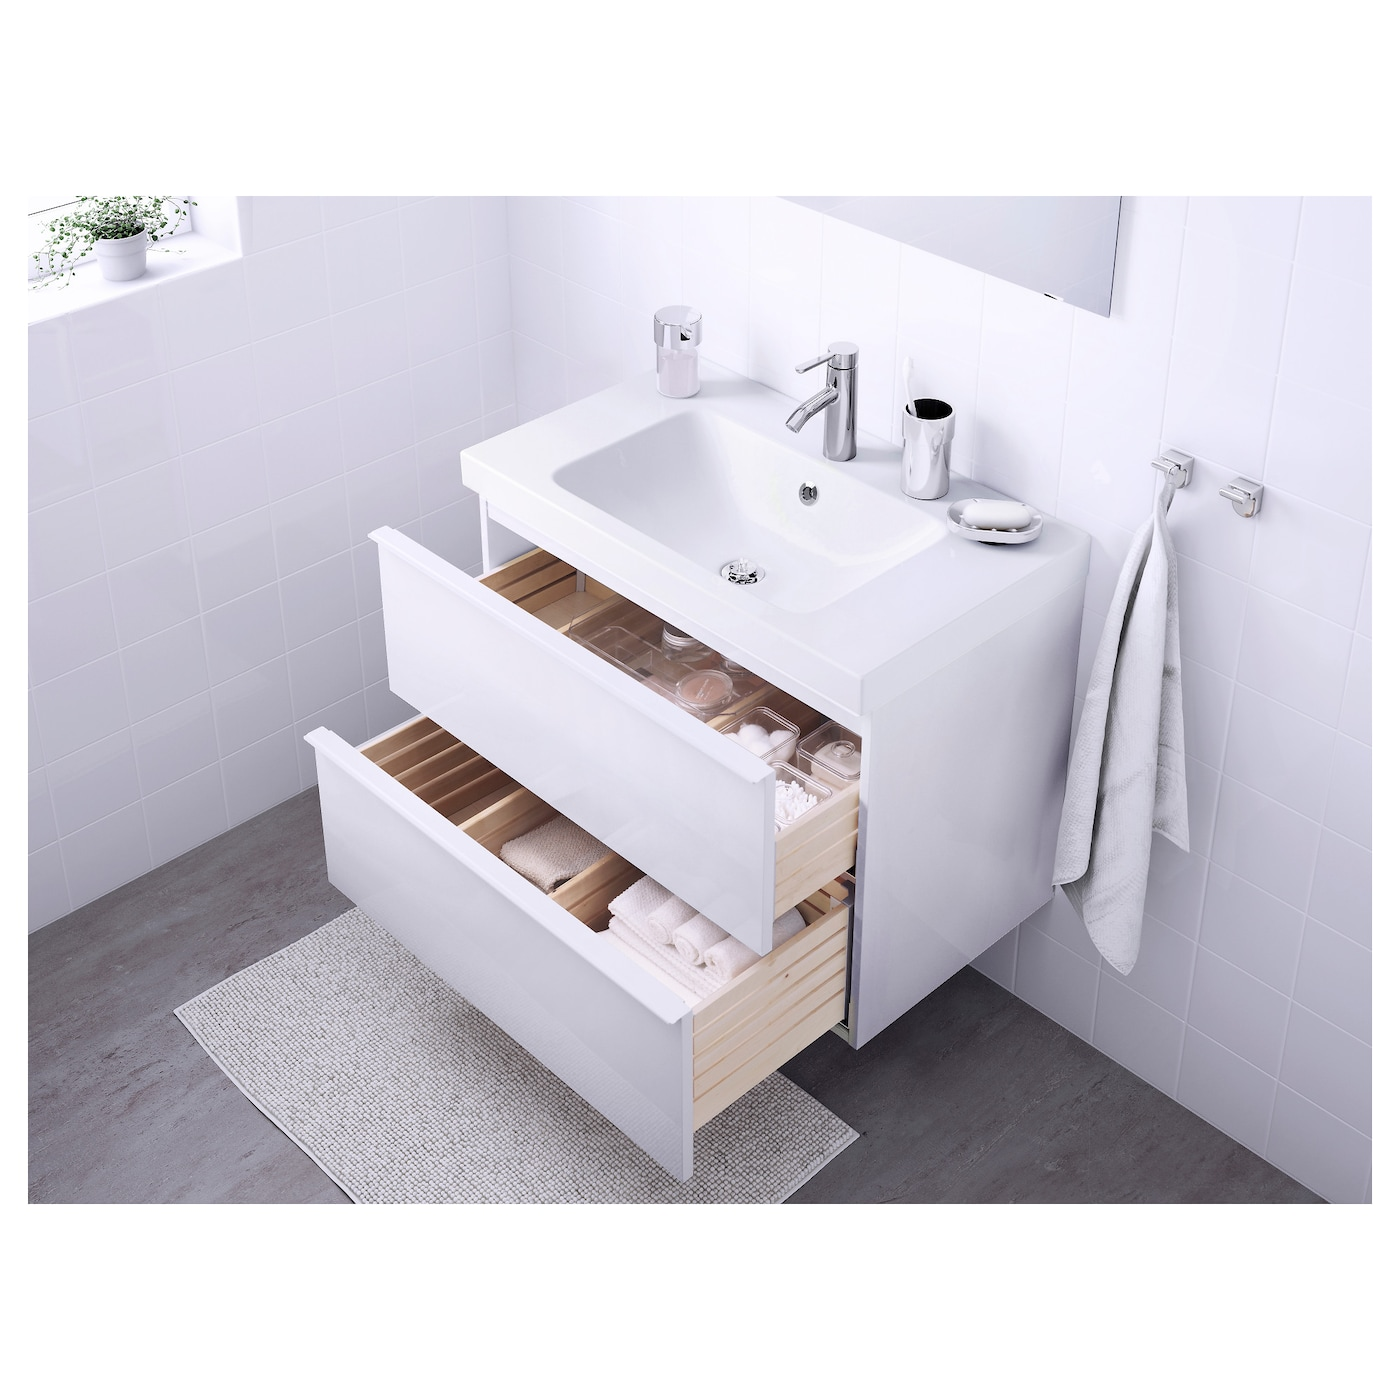 odensvik godmorgon wash stand with 2 drawers high gloss white 83 x 49 x 64 cm ikea. Black Bedroom Furniture Sets. Home Design Ideas